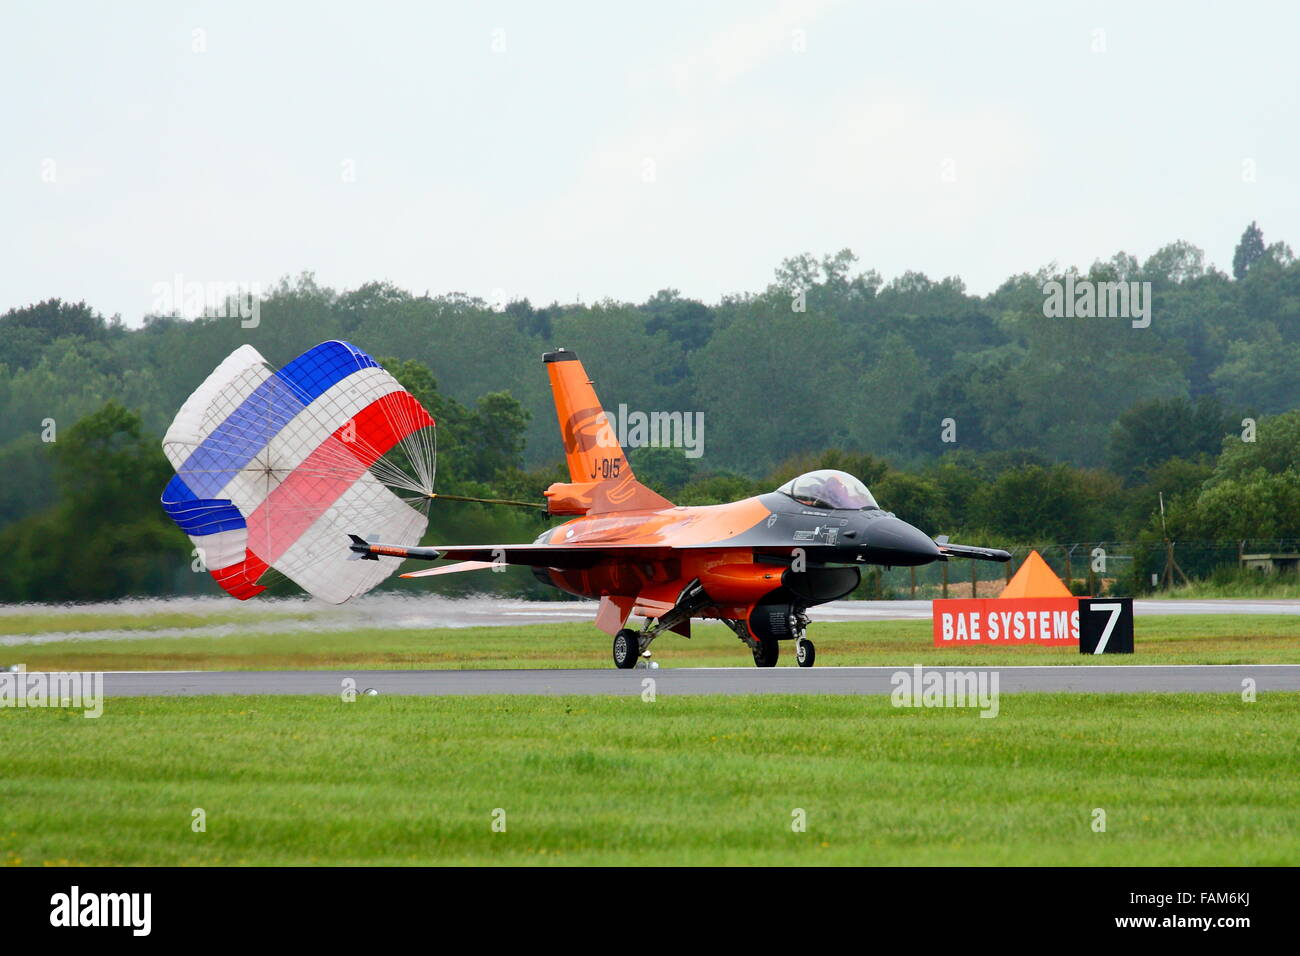 A Dutch F16 J-015 landing at the Royal International Air Tattoo RIAT 2012 at Fairford with the parachute open - Stock Image